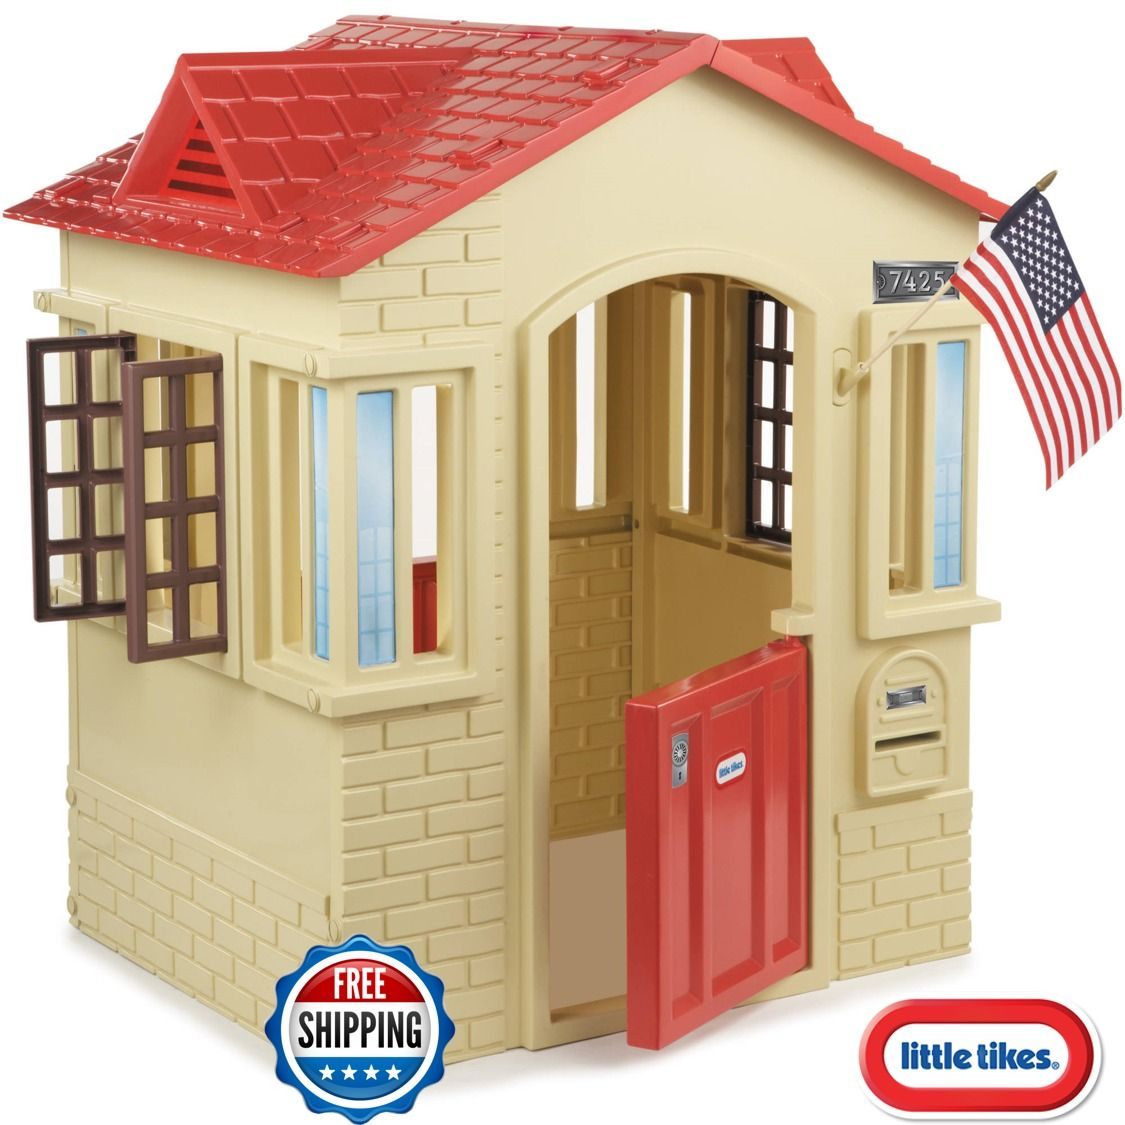 Little Tikes Cape Cottage Playhouse play house Backyard Outdoor Red ...